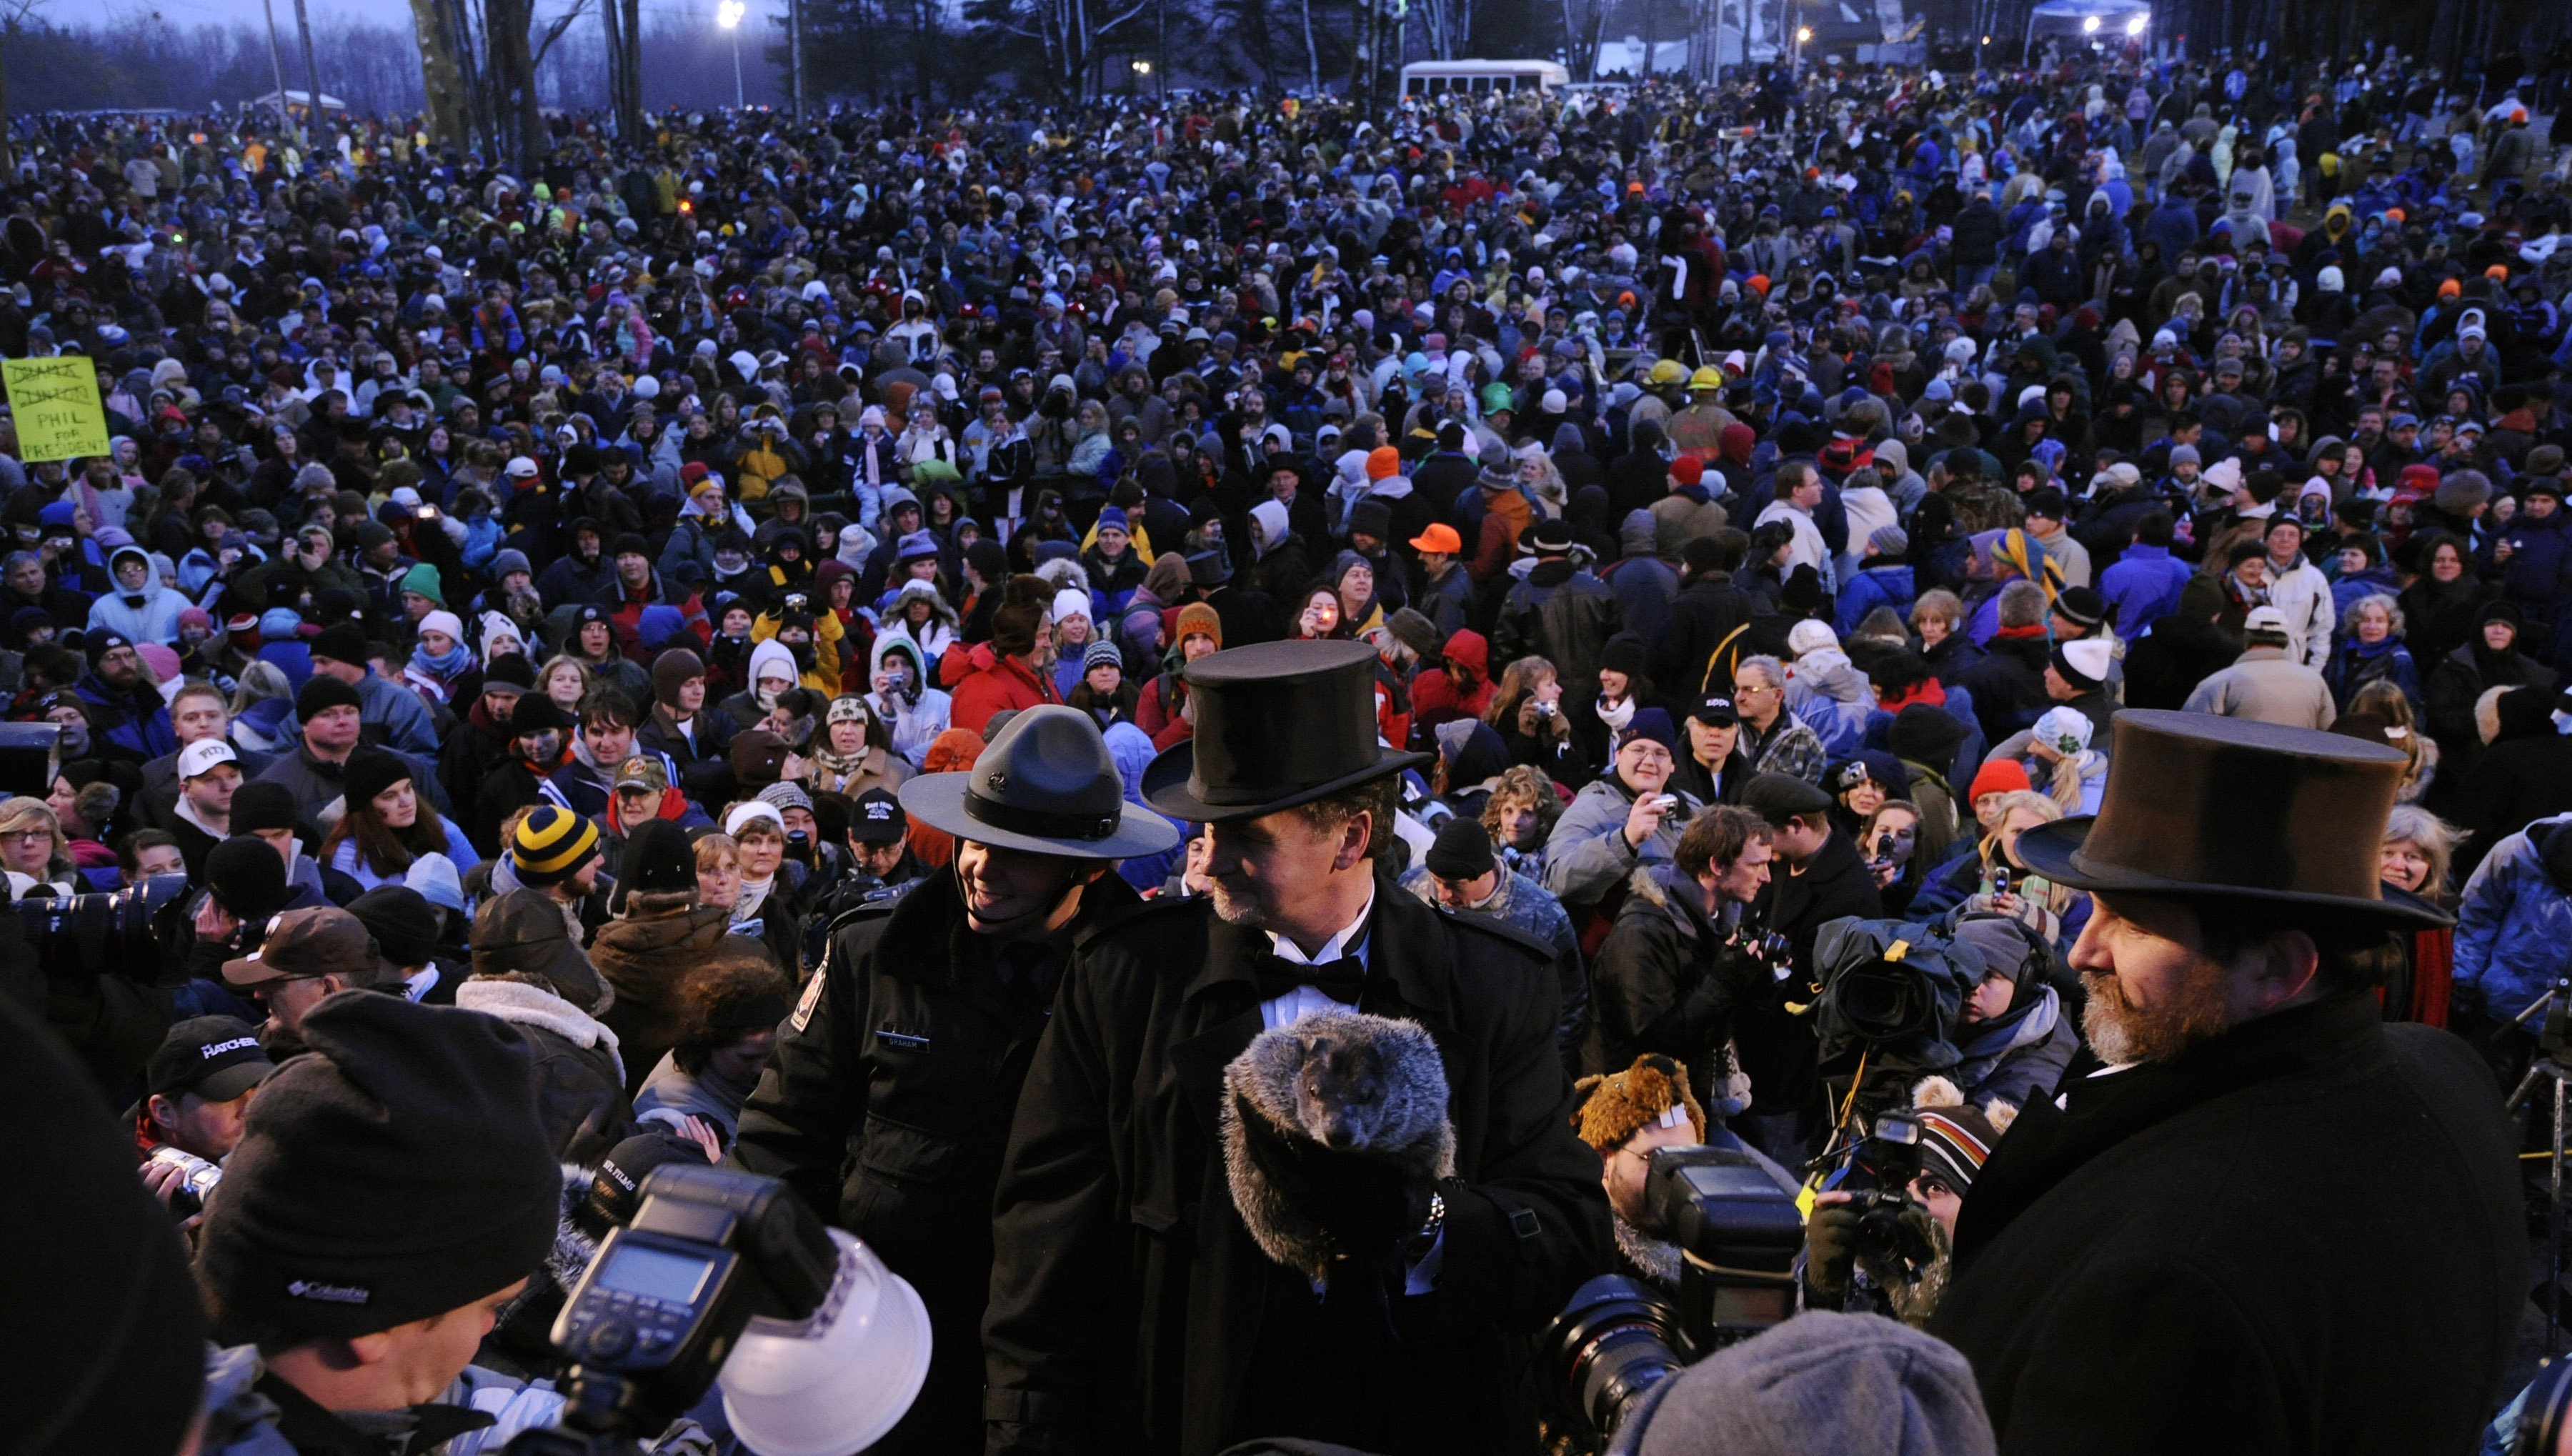 Thousands of people gathered on Groundhog Day | Photo; Getty Images